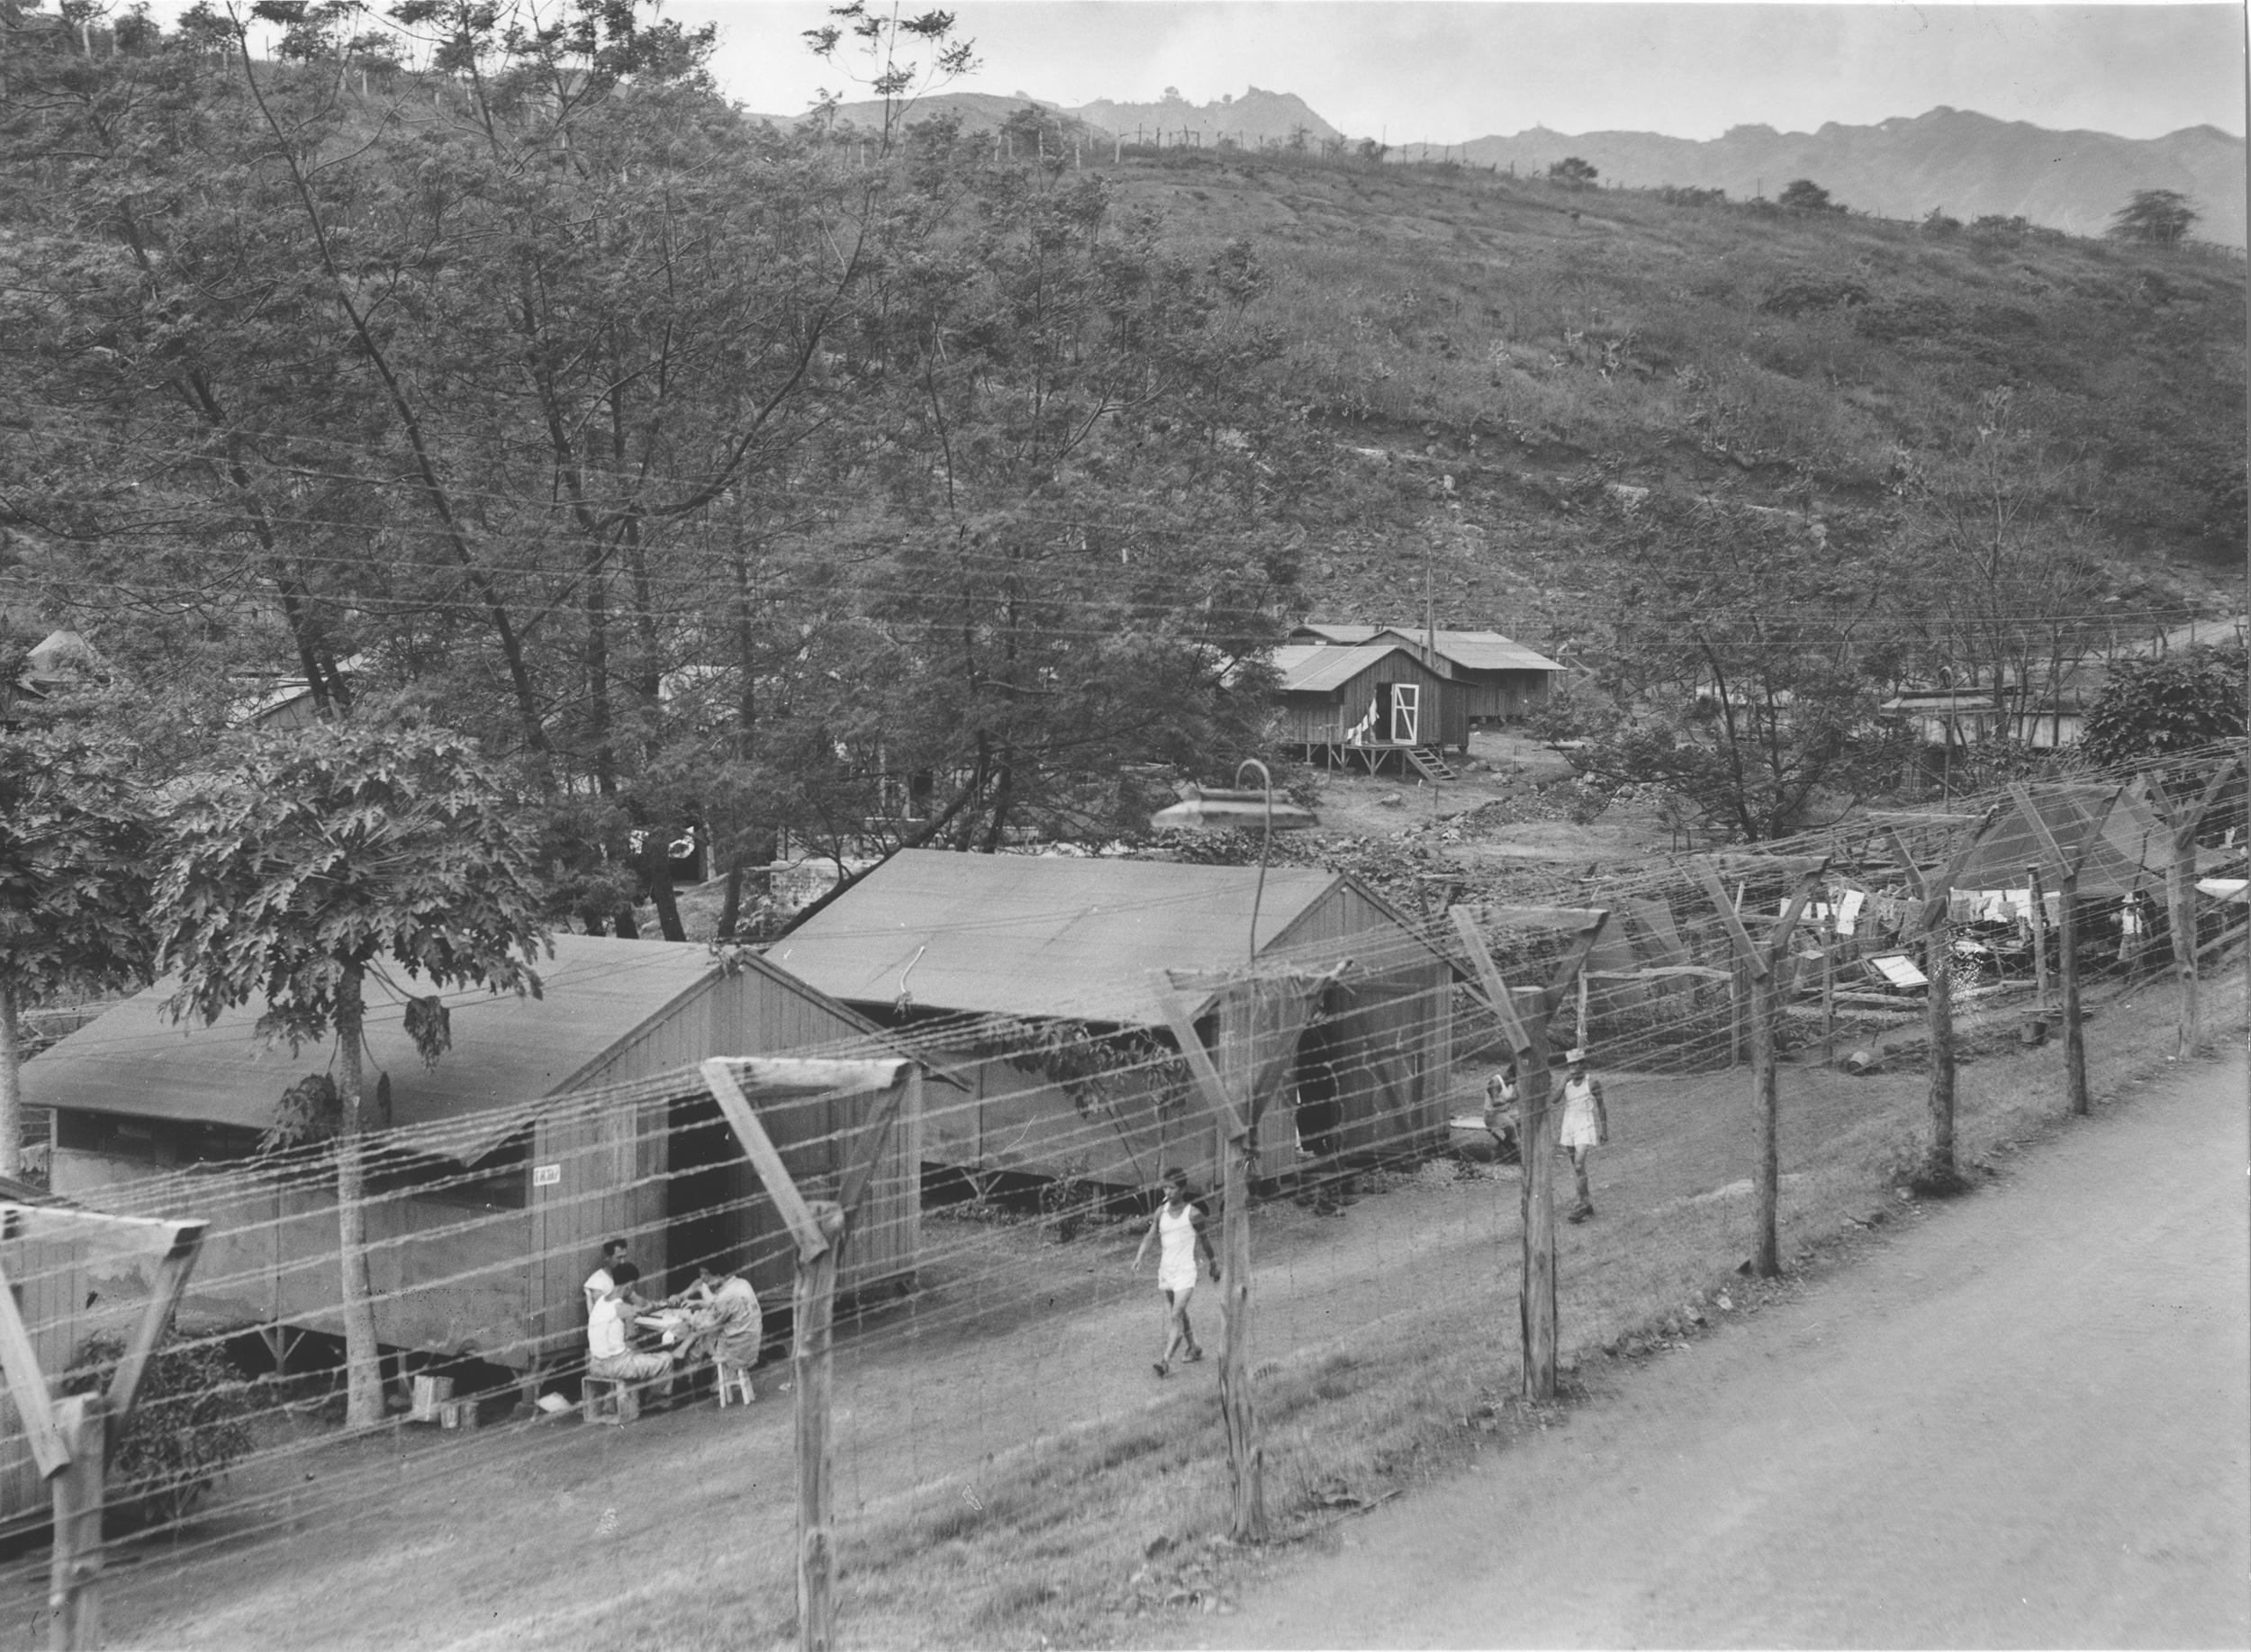 Image: Barracks at Honouliuli Internment Camp, circa 1945-46.